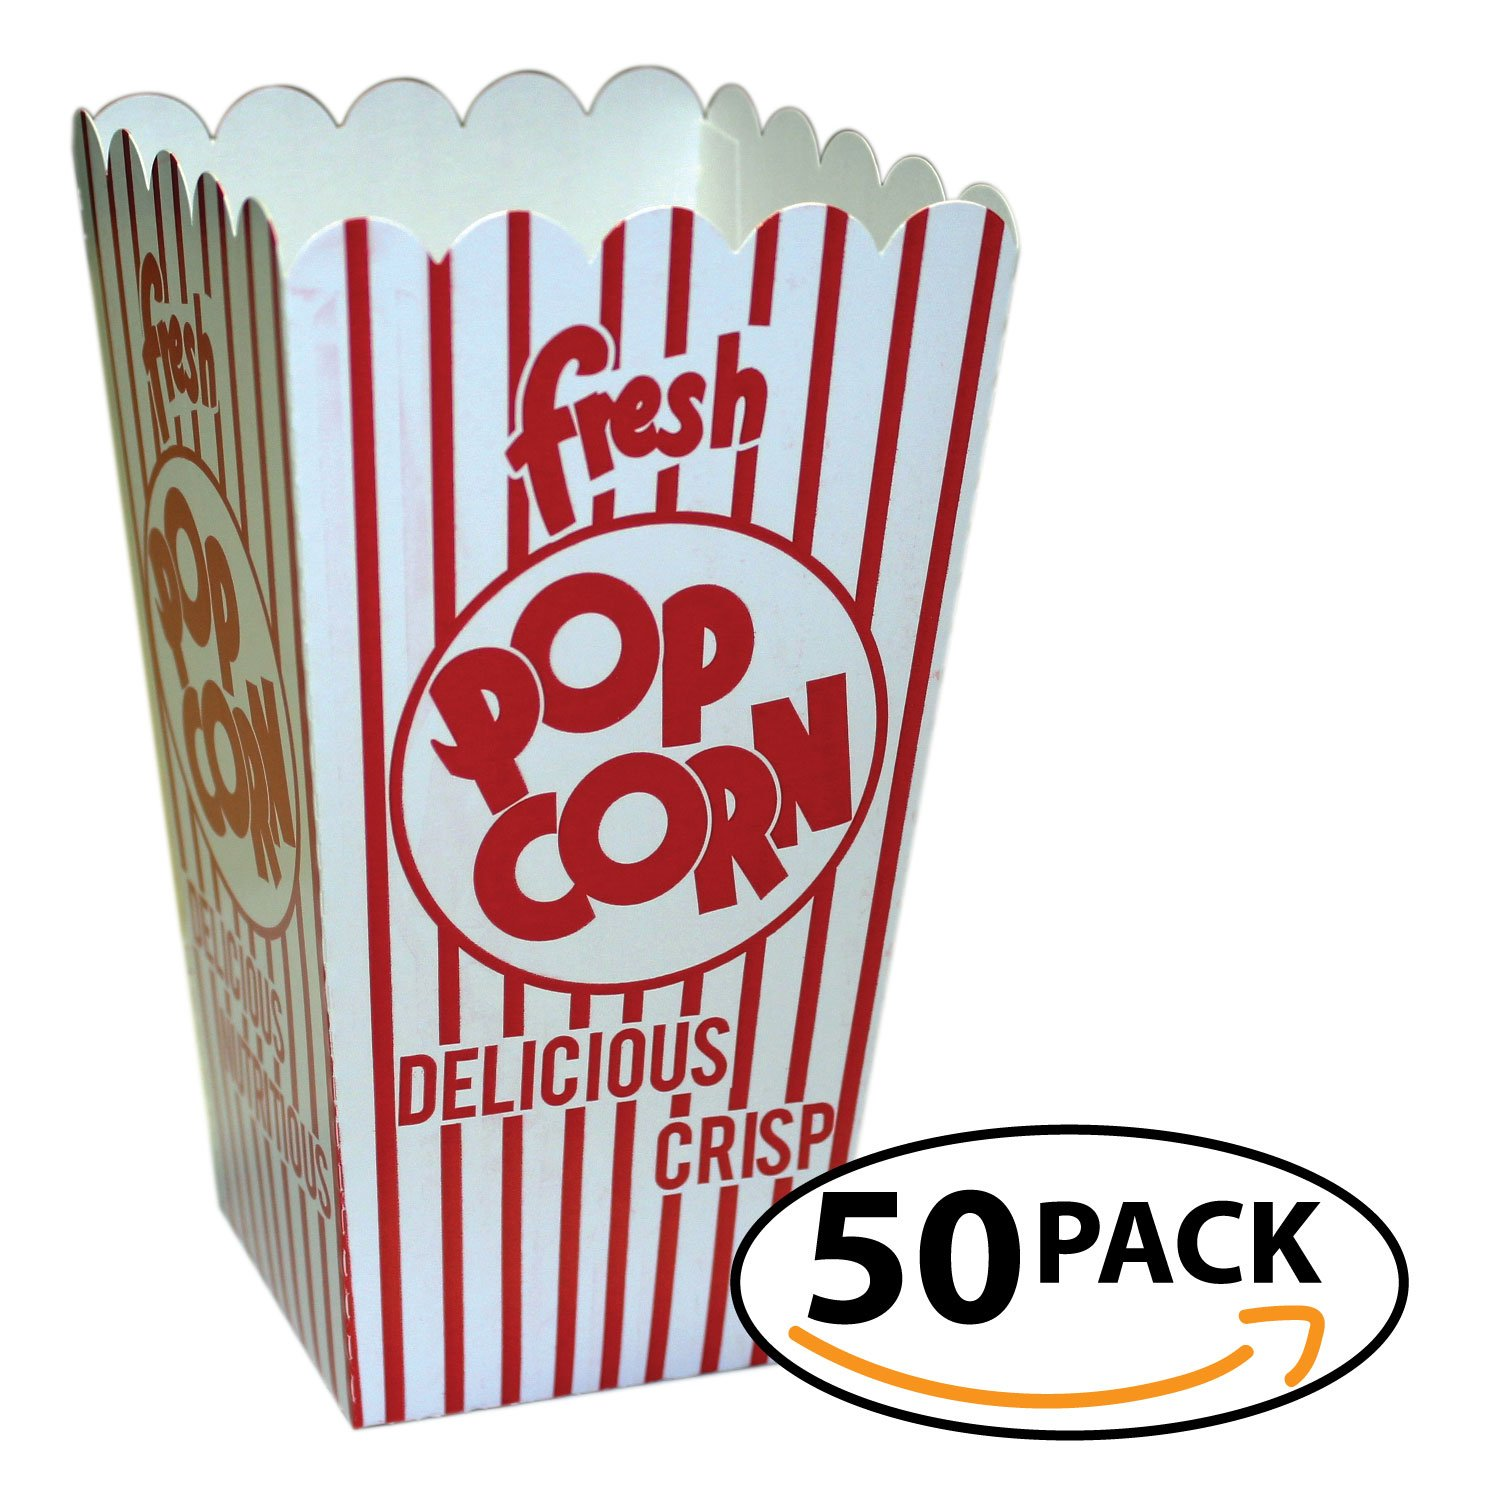 Popcorn Scoop Box Small Size (.79oz) Bag of 50 disposable treat boxes - by Carnival Canada Size 44E